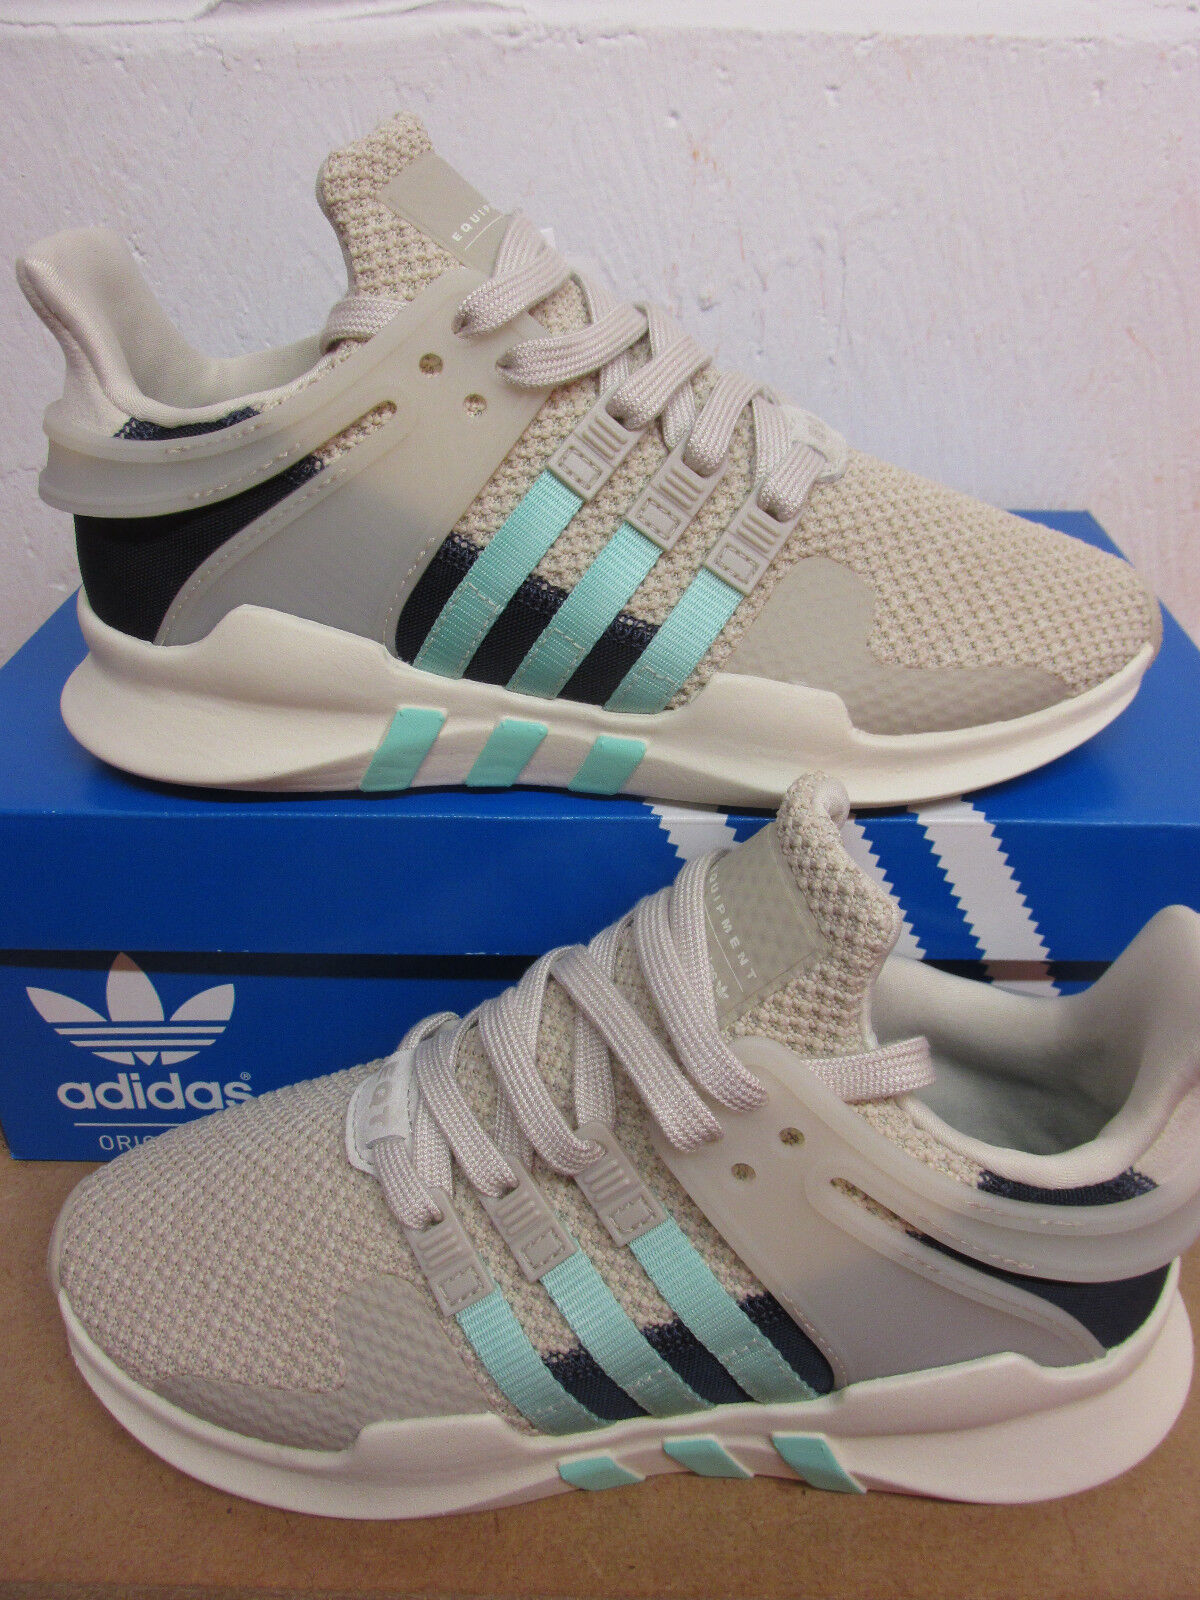 Adidas Originals Equipment Support ADV Womens Running Trainers BB2328 Sneakers